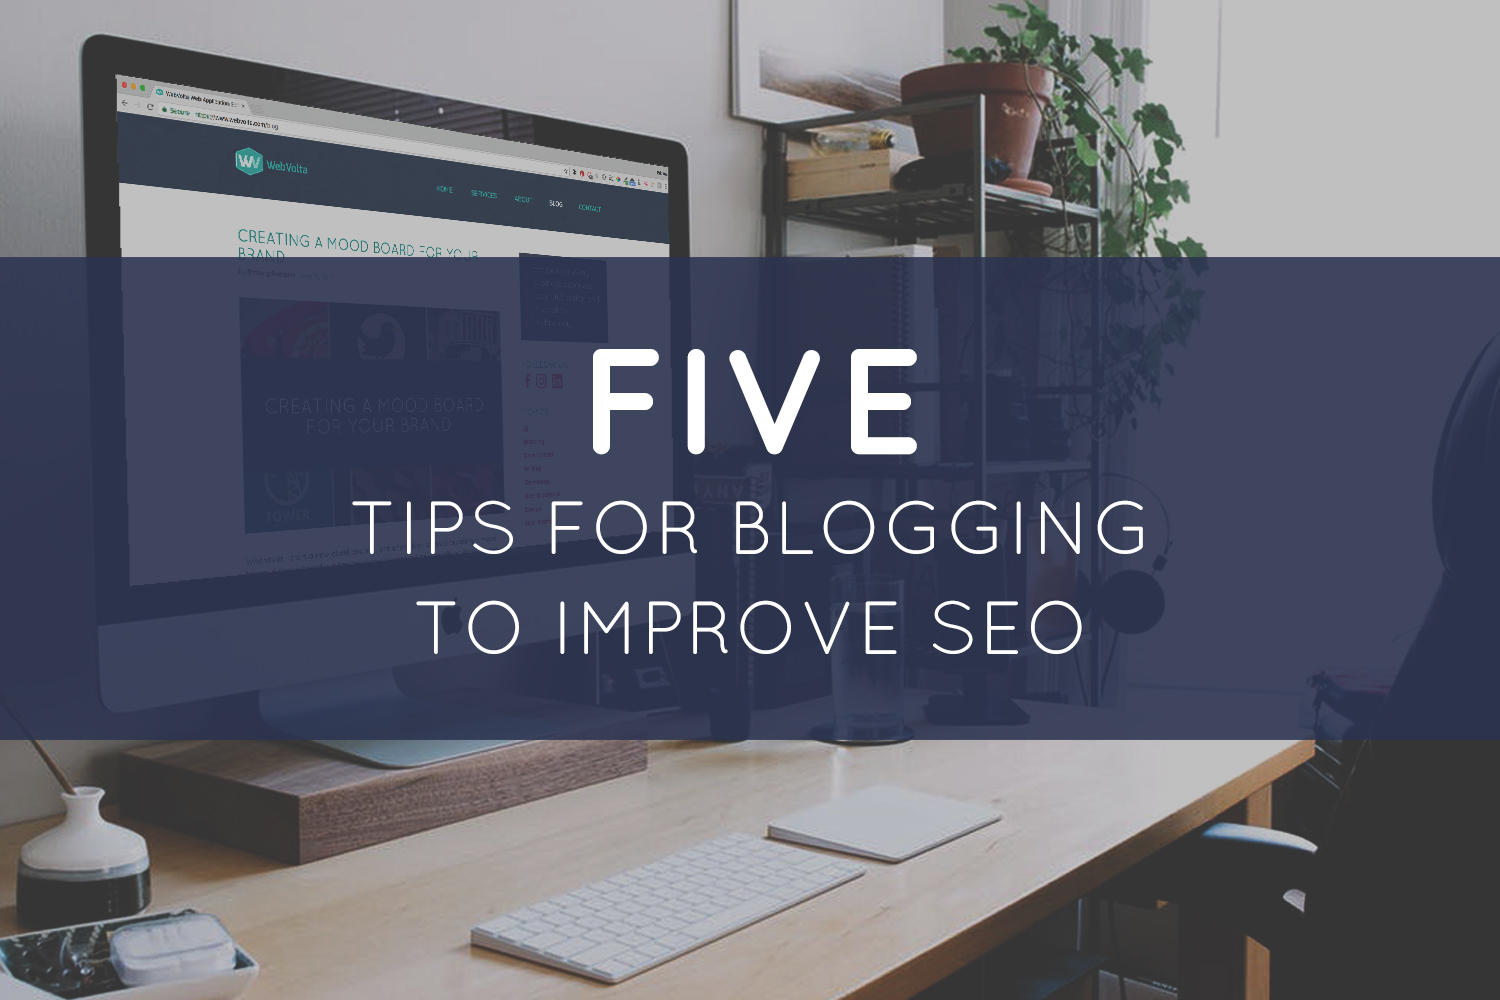 Five Tips for Blogging to Improve SEO